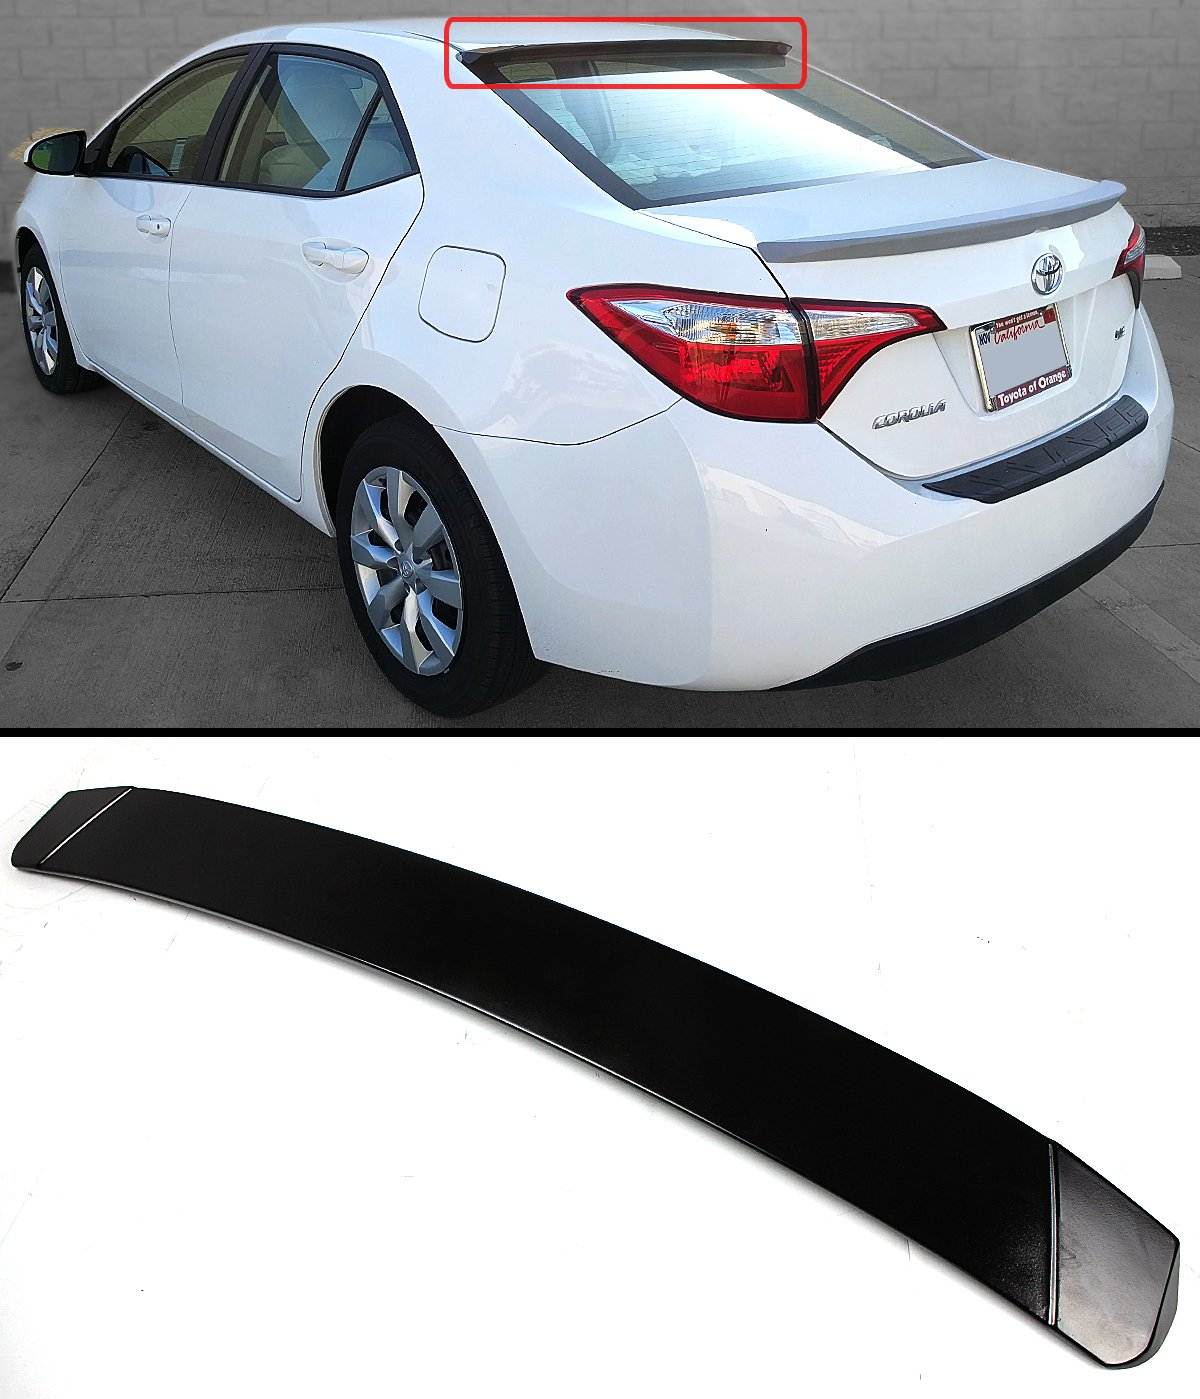 Cuztom Tuning JDM Sport Style Rear ROOF Window Spoiler Visor Wing for 2014-2018 Toyota Corolla